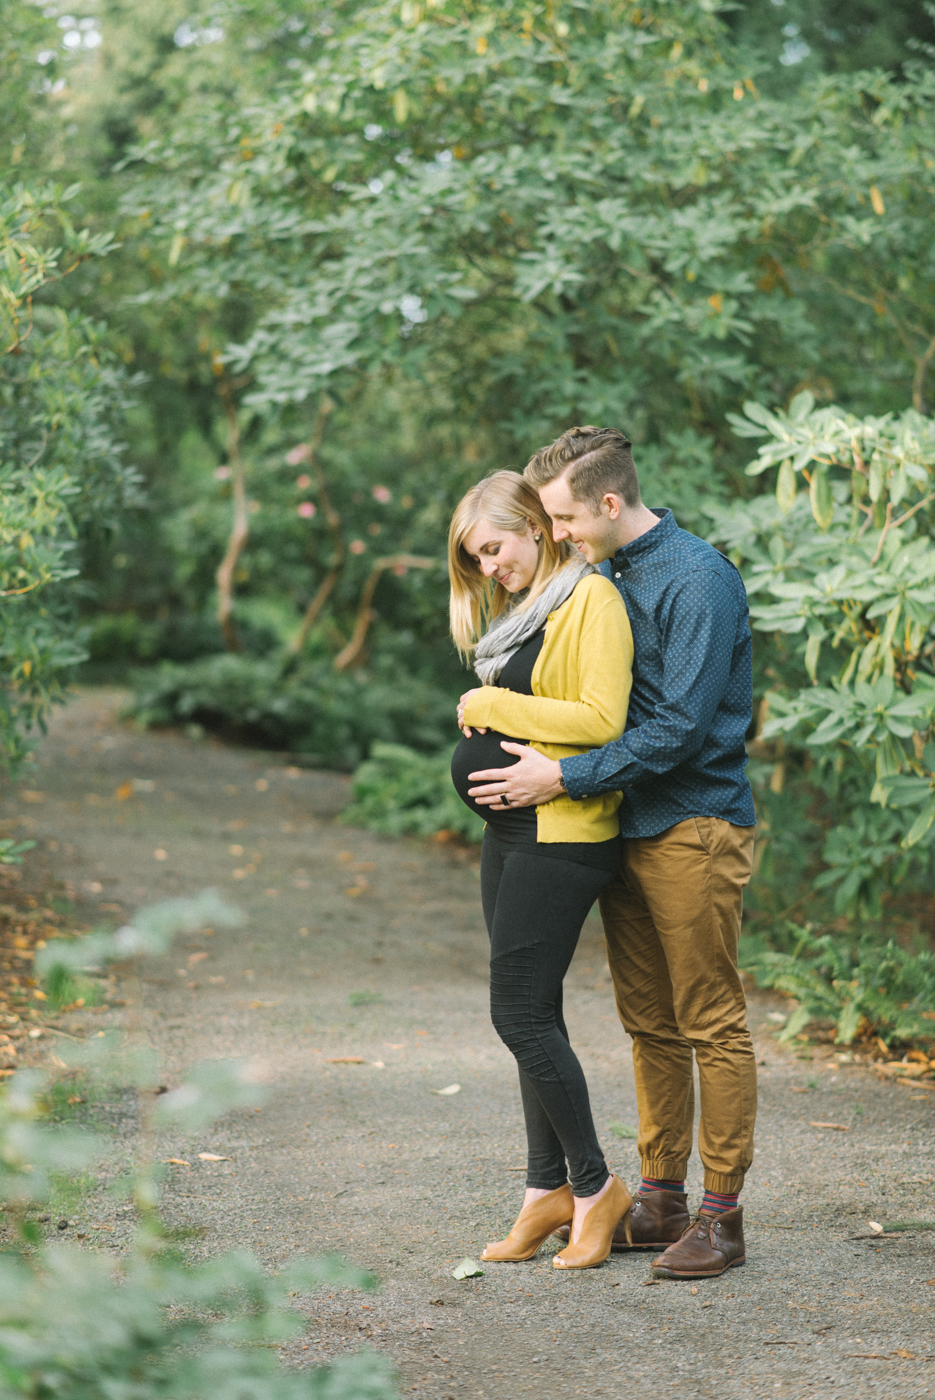 portland-oregon-maternity-photography-pregnancy-crystal-springs-rhododendron-garden-sweet-romantic-shelley-marie-photo-1